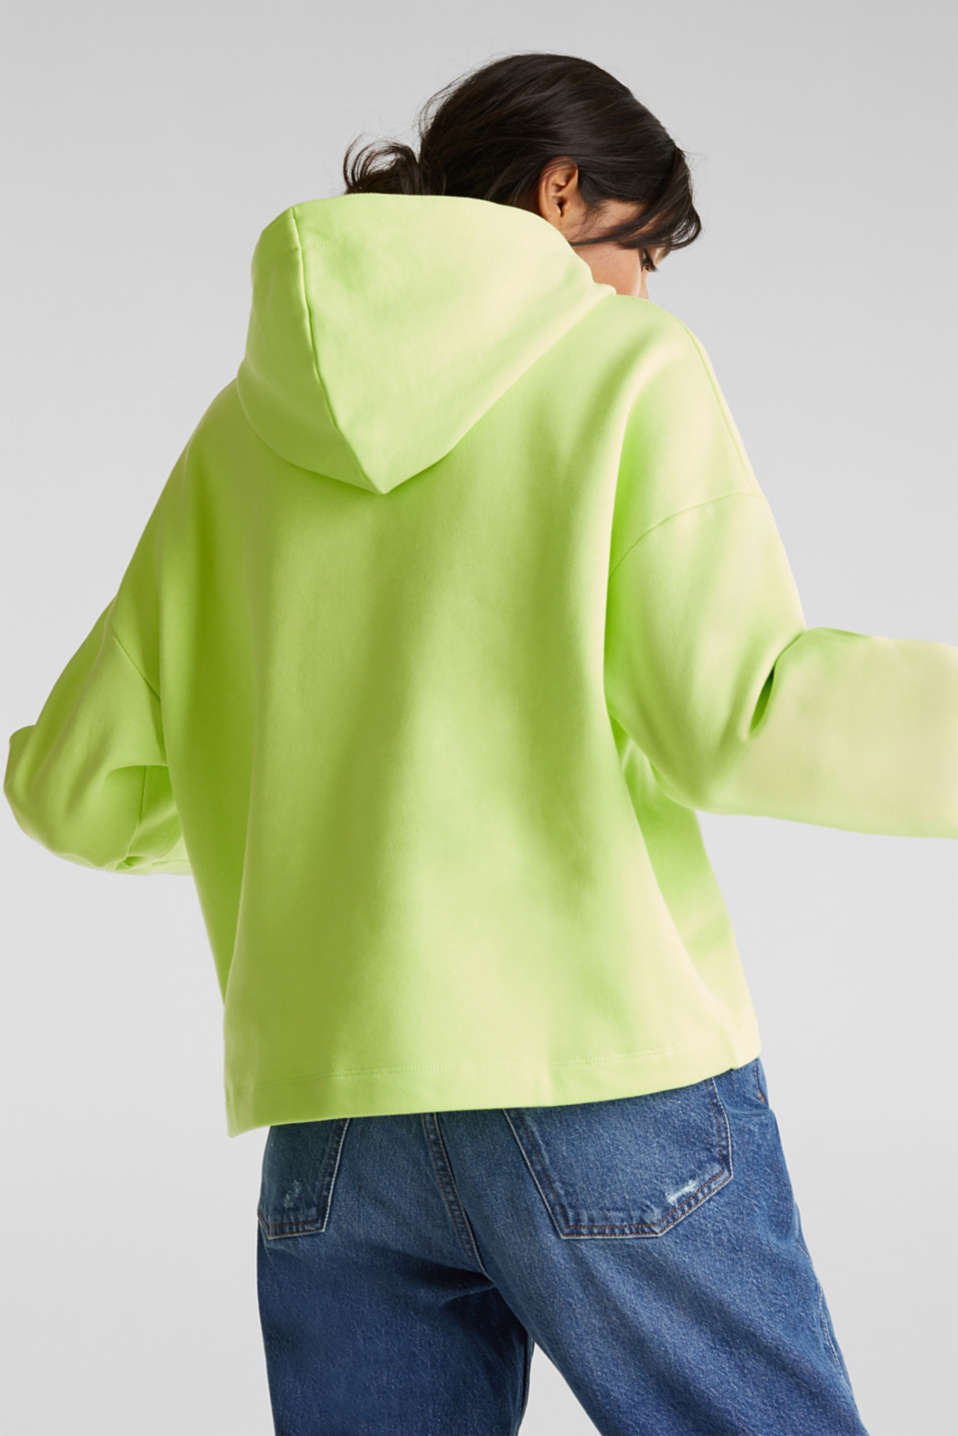 NEON boxy sweatshirt with a hood, 100% cotton, LIME YELLOW, detail image number 3